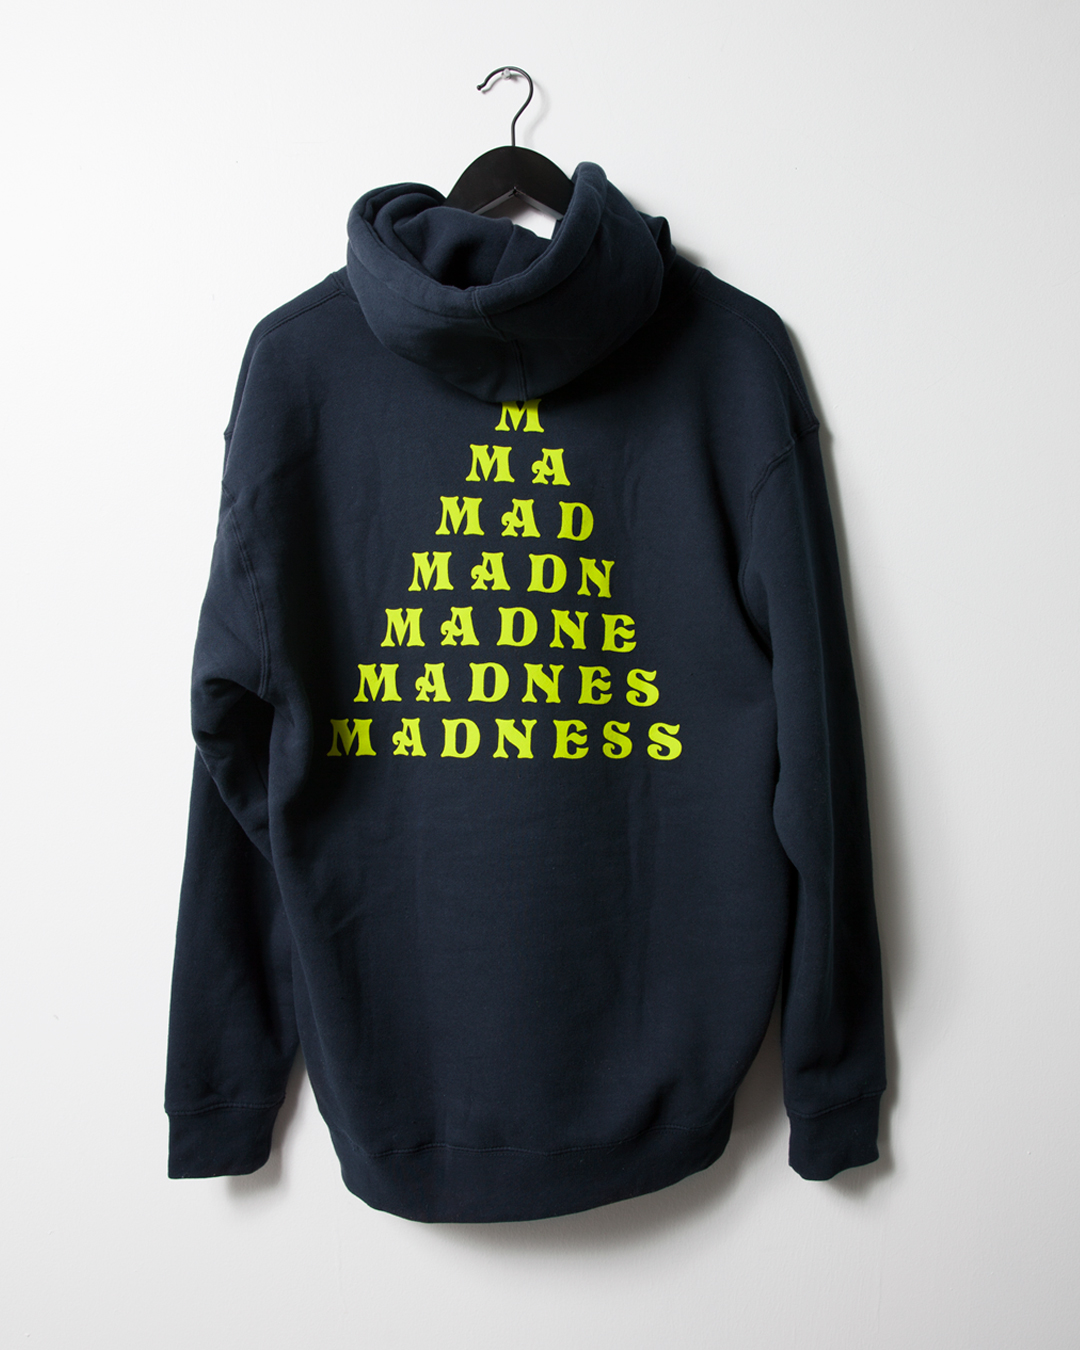 madness-skateboards-BAR-NAVY-PULLOVER-BACK-1350.jpg